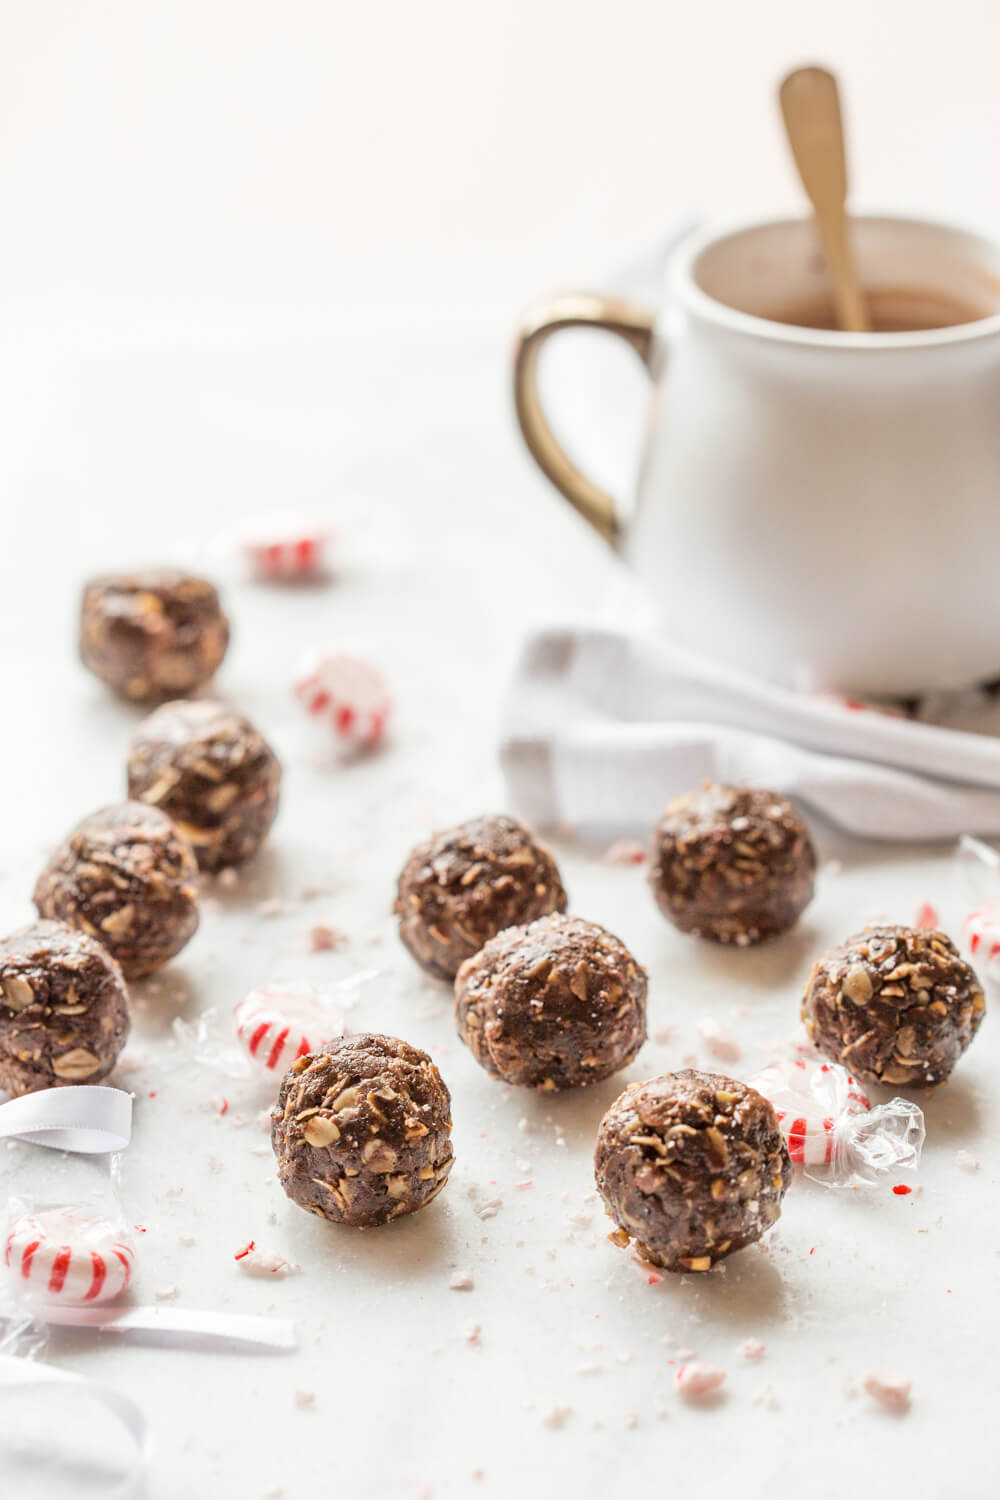 These Peppermint Mocha Chocolate Energy Bites made with almond butter, oats, and ground coffee are sooo easy to prepare– all you need is a big bowl and mixing spoon. Coffee balls, heck yessss!